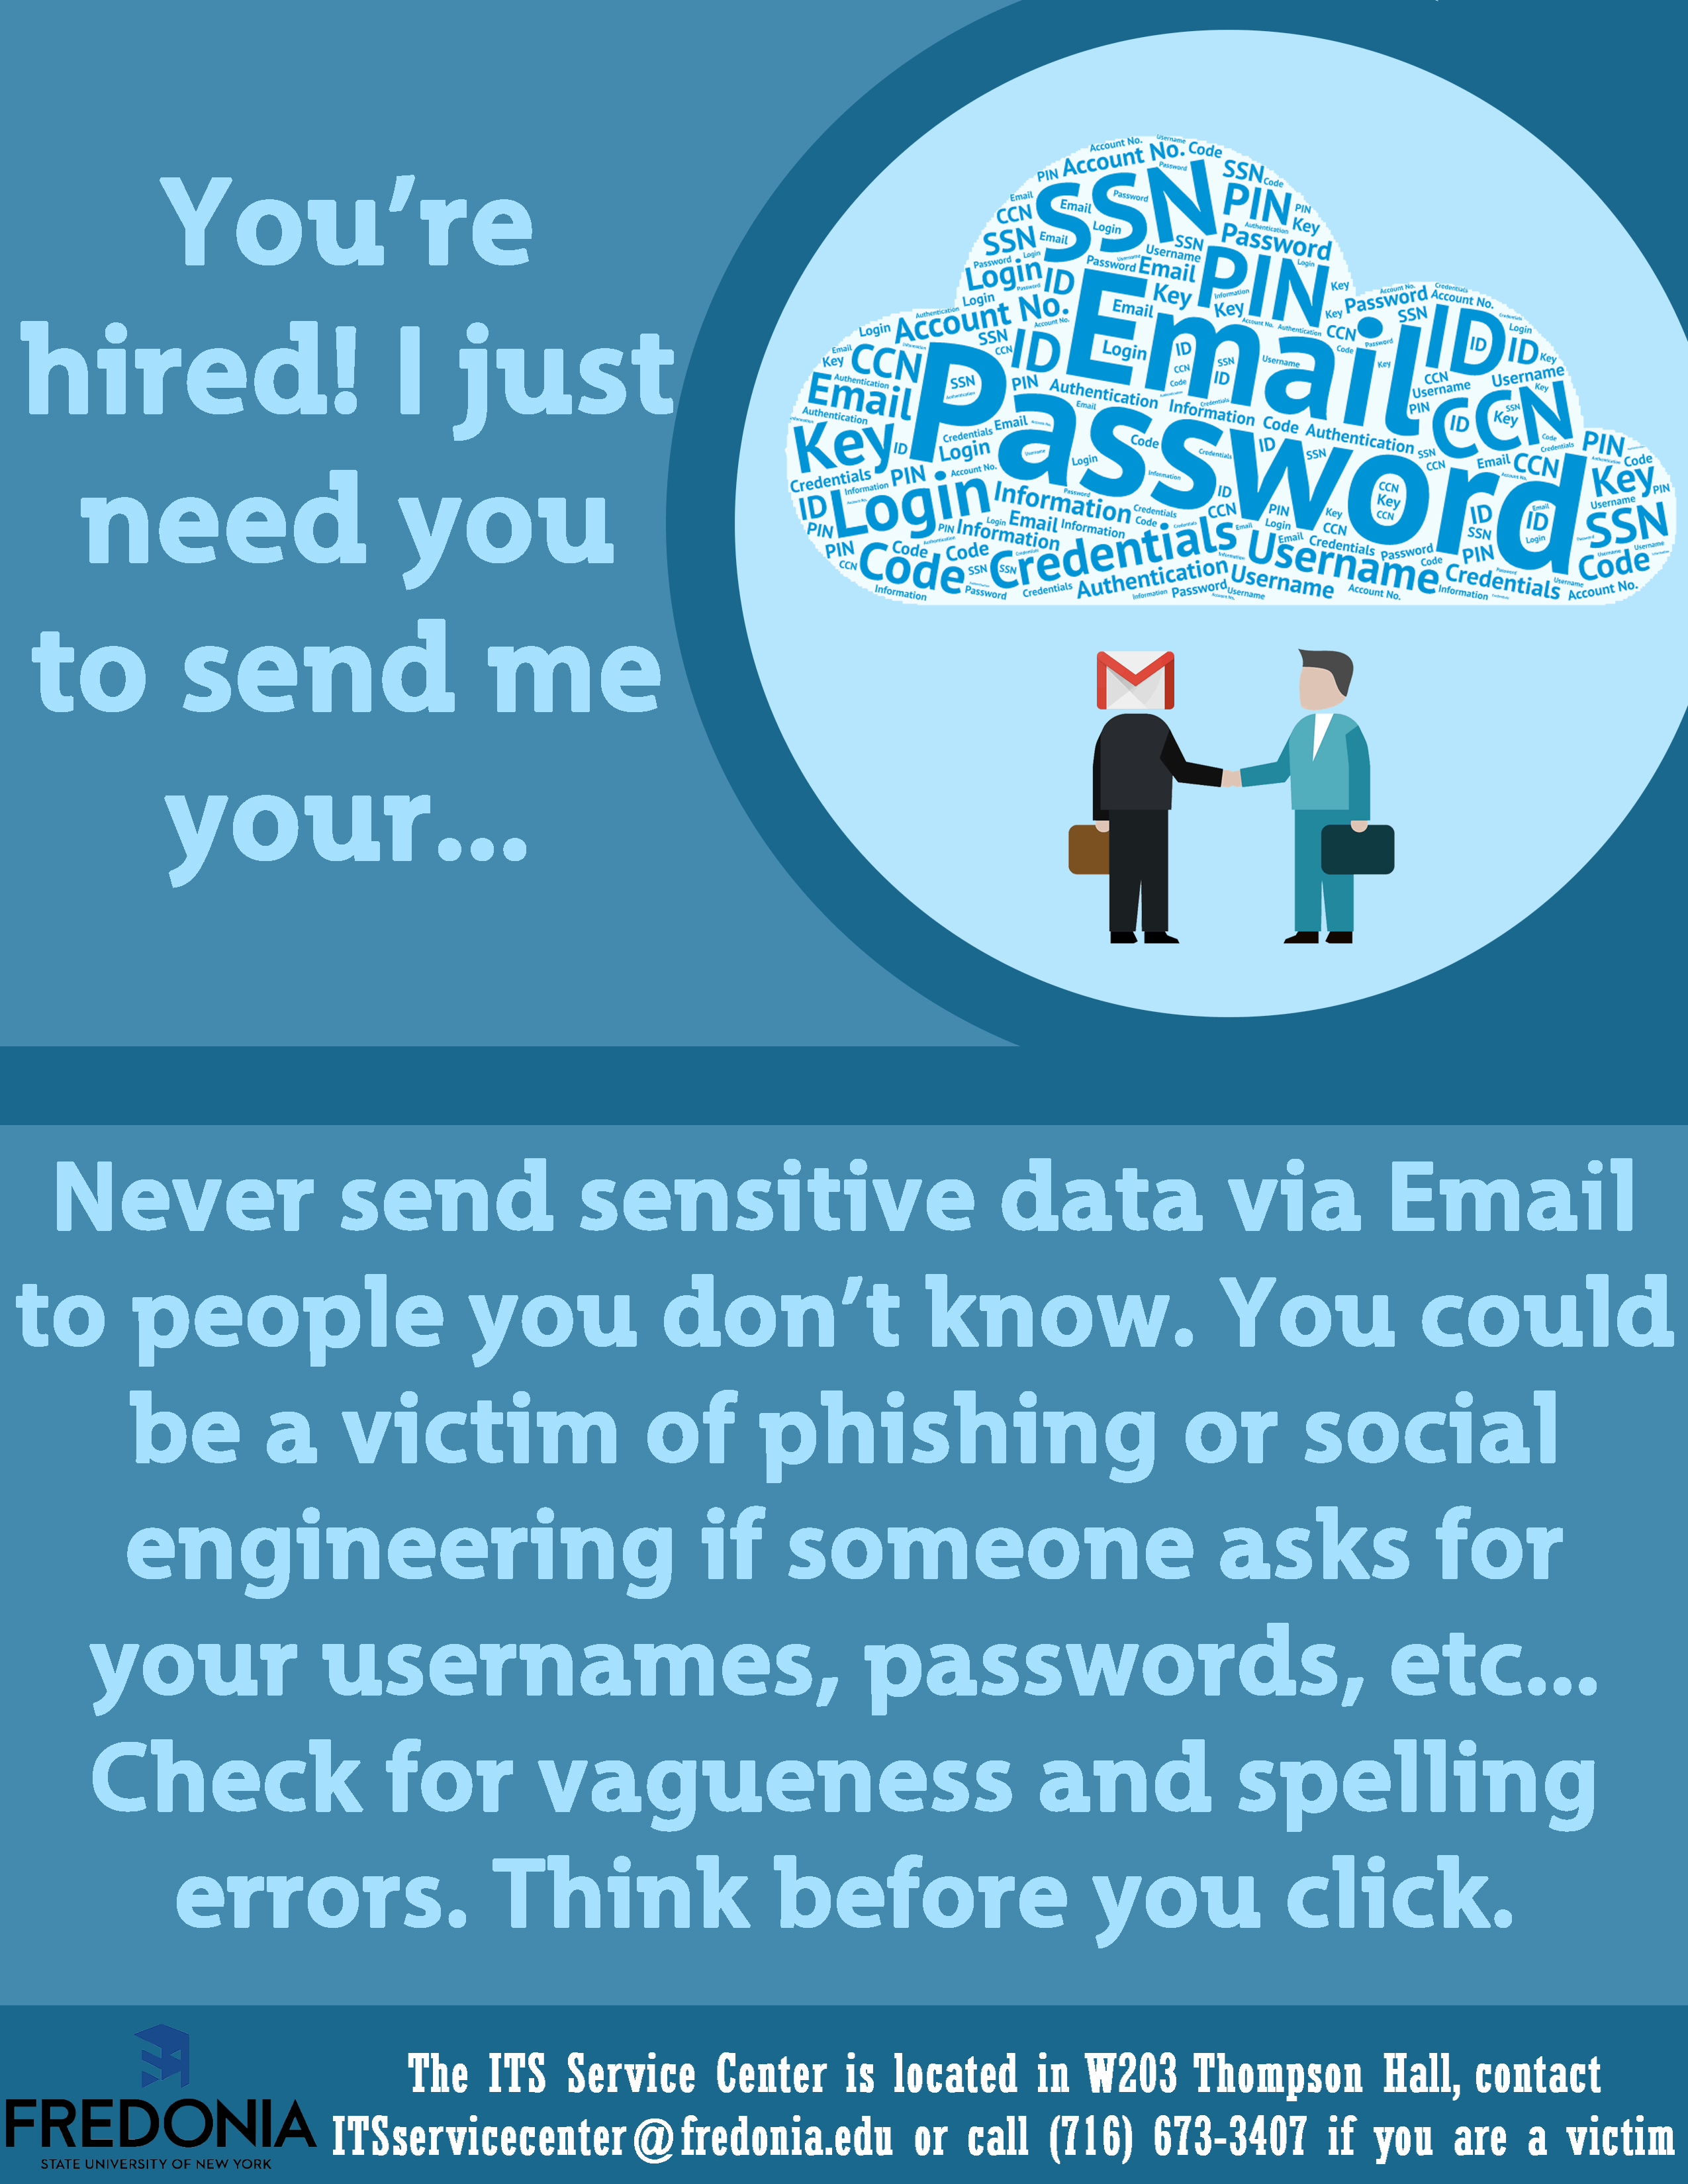 You're hired - never send sensitive data via email to people you don't know